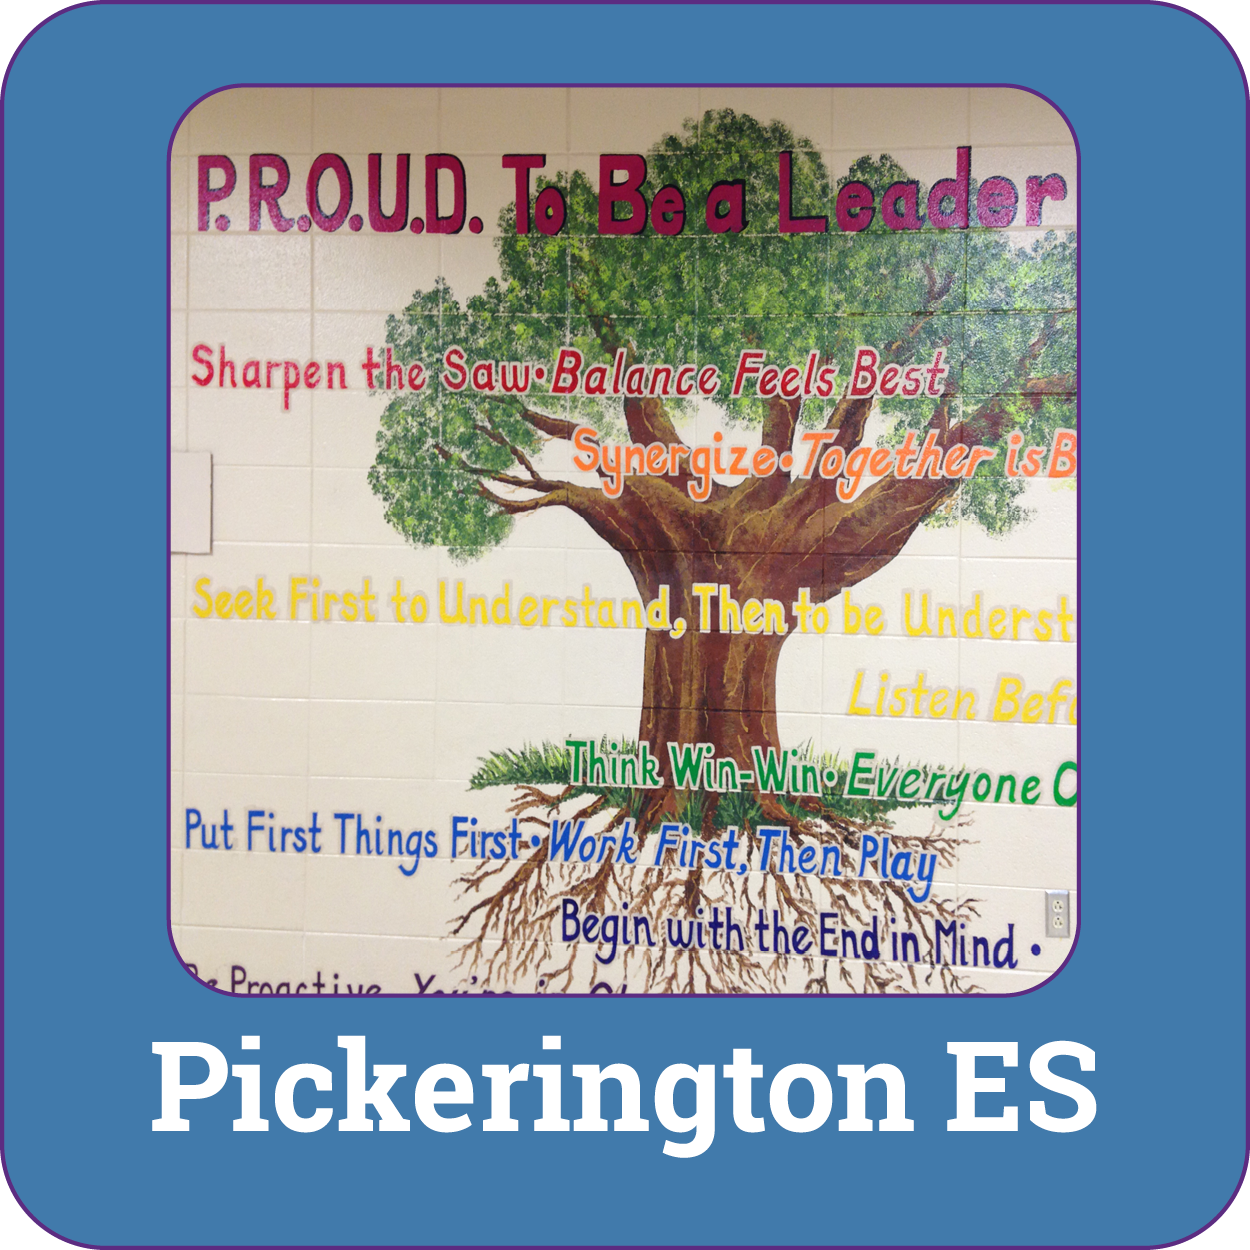 Link to Pickerington Elementary Information